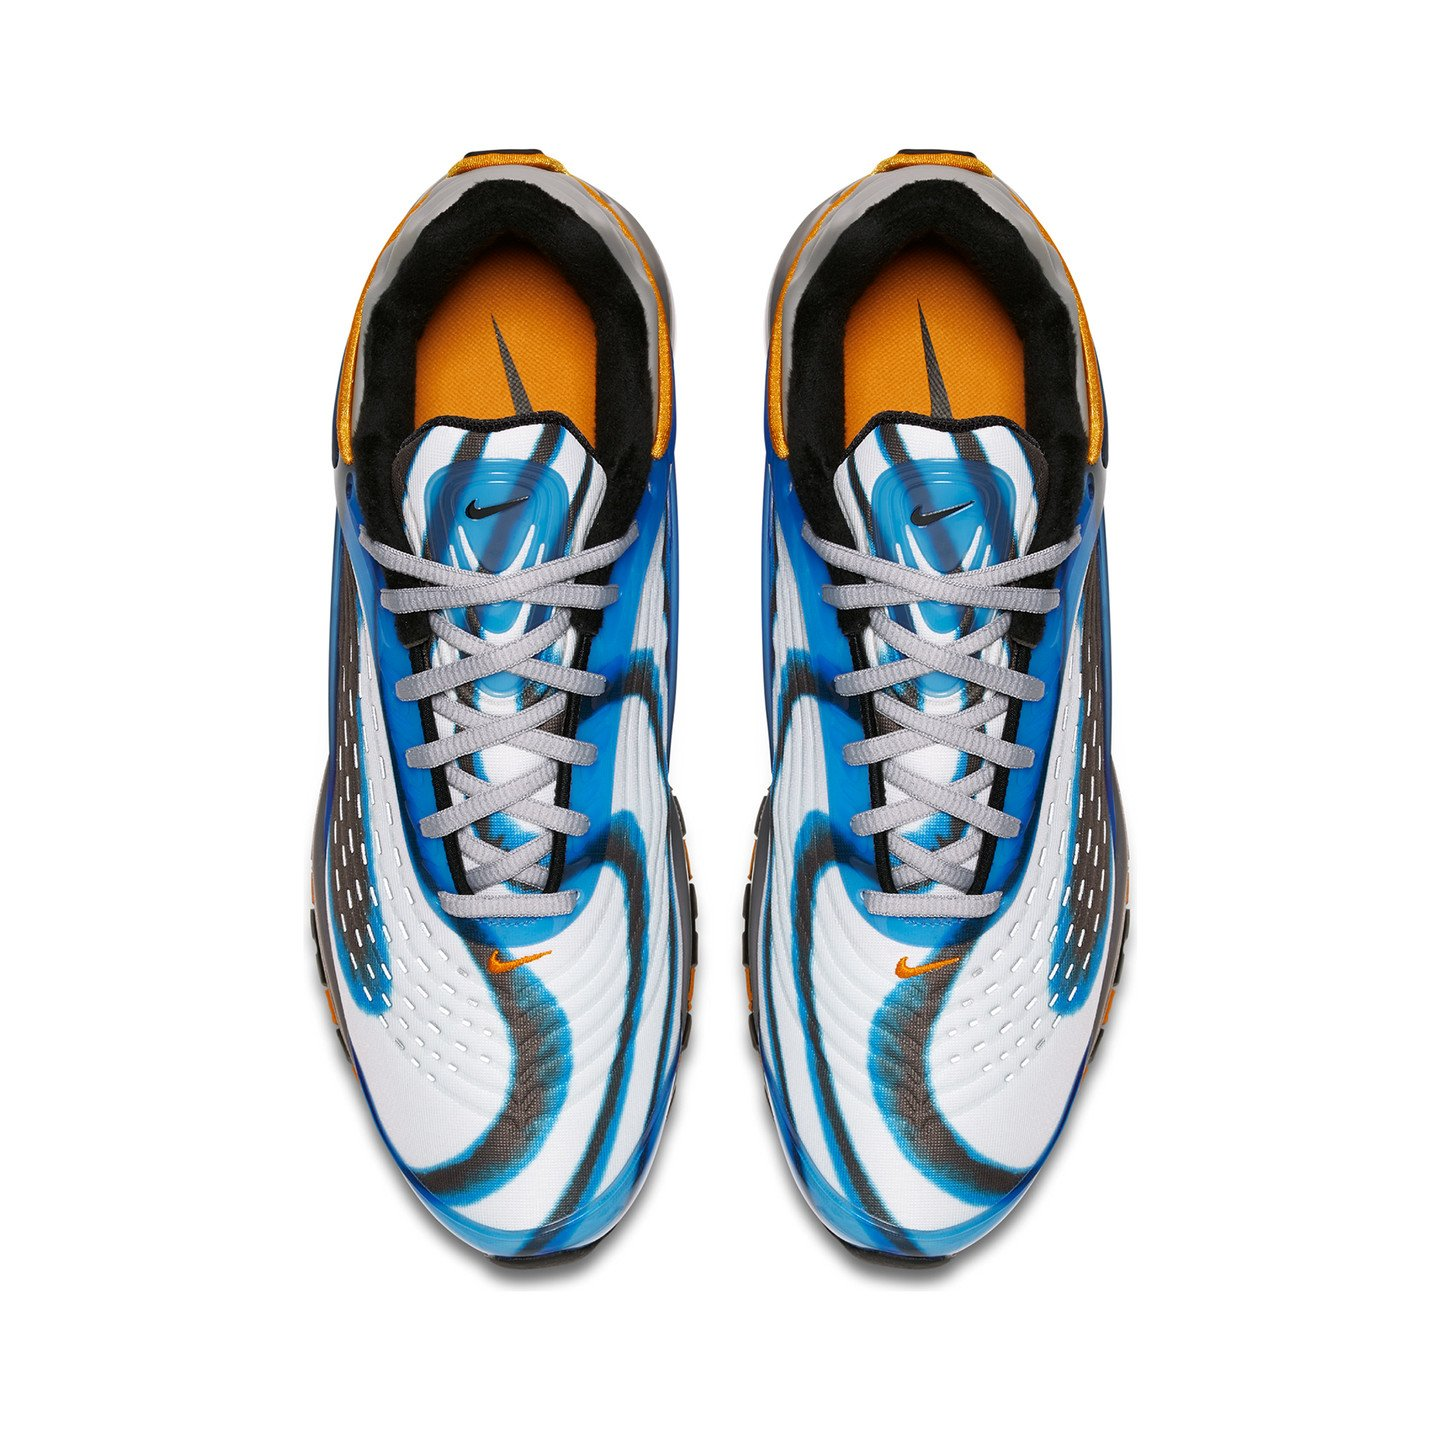 Nike Air Max Deluxe OG 'Photo Blue' Photo Blue / Wolf Grey / Orange Peel / Black AJ7831-401